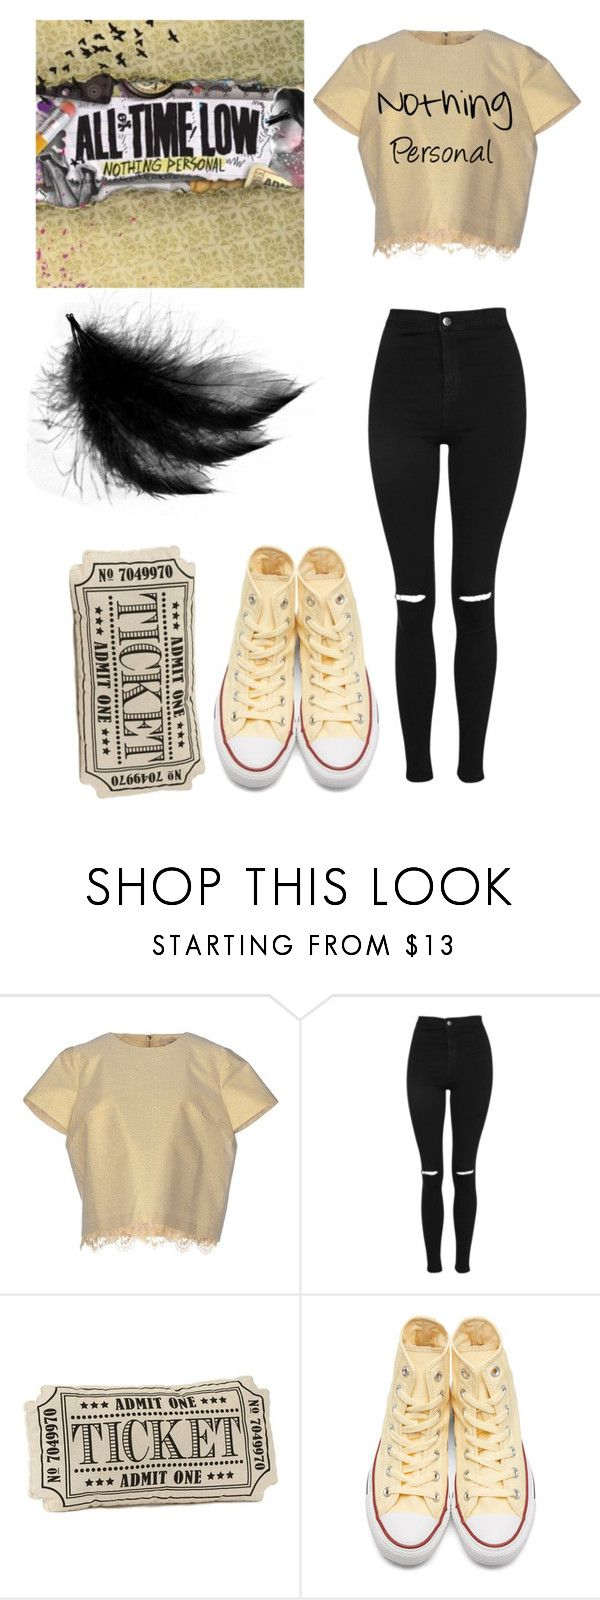 """""""Nothing Personal"""" by universal-mess ❤ liked on Polyvore featuring SCEE, Topshop, Converse, beige, alltimelow, nothingpersonal and admitone"""